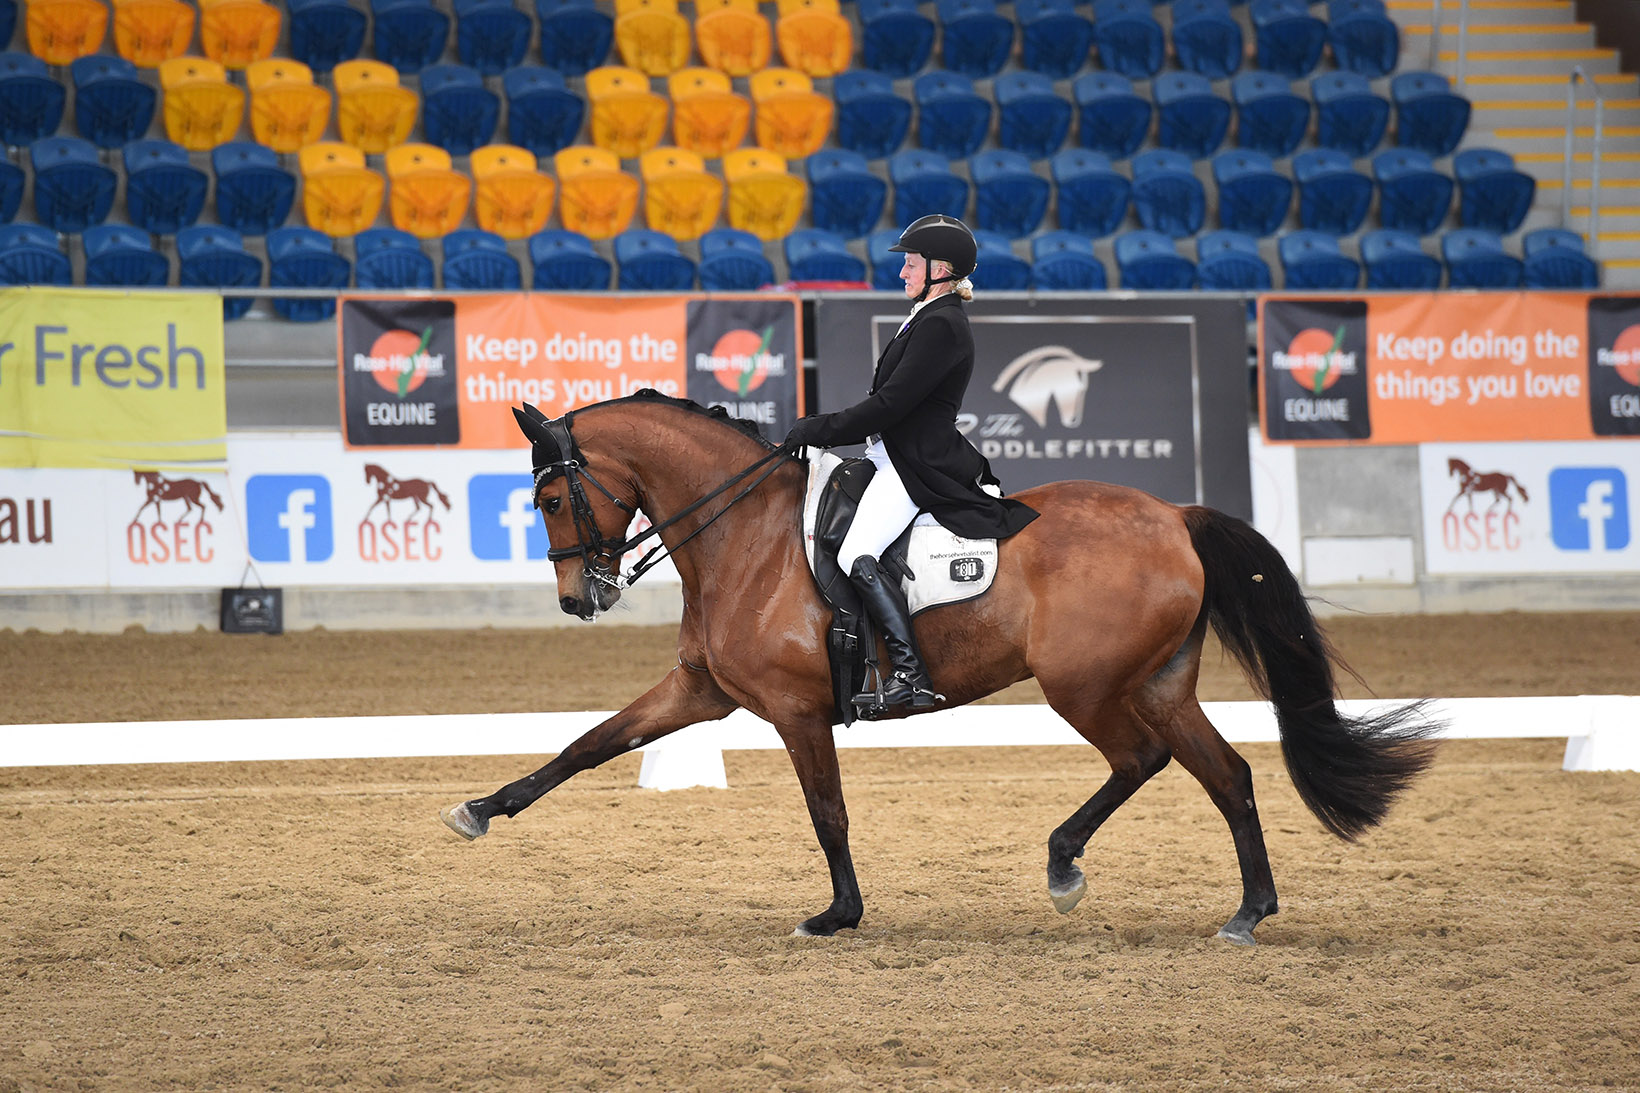 Extended trot, showing A Spiderbite and Sally at the QLD State Dressage Championships 2019. Photo: Oz Shotz